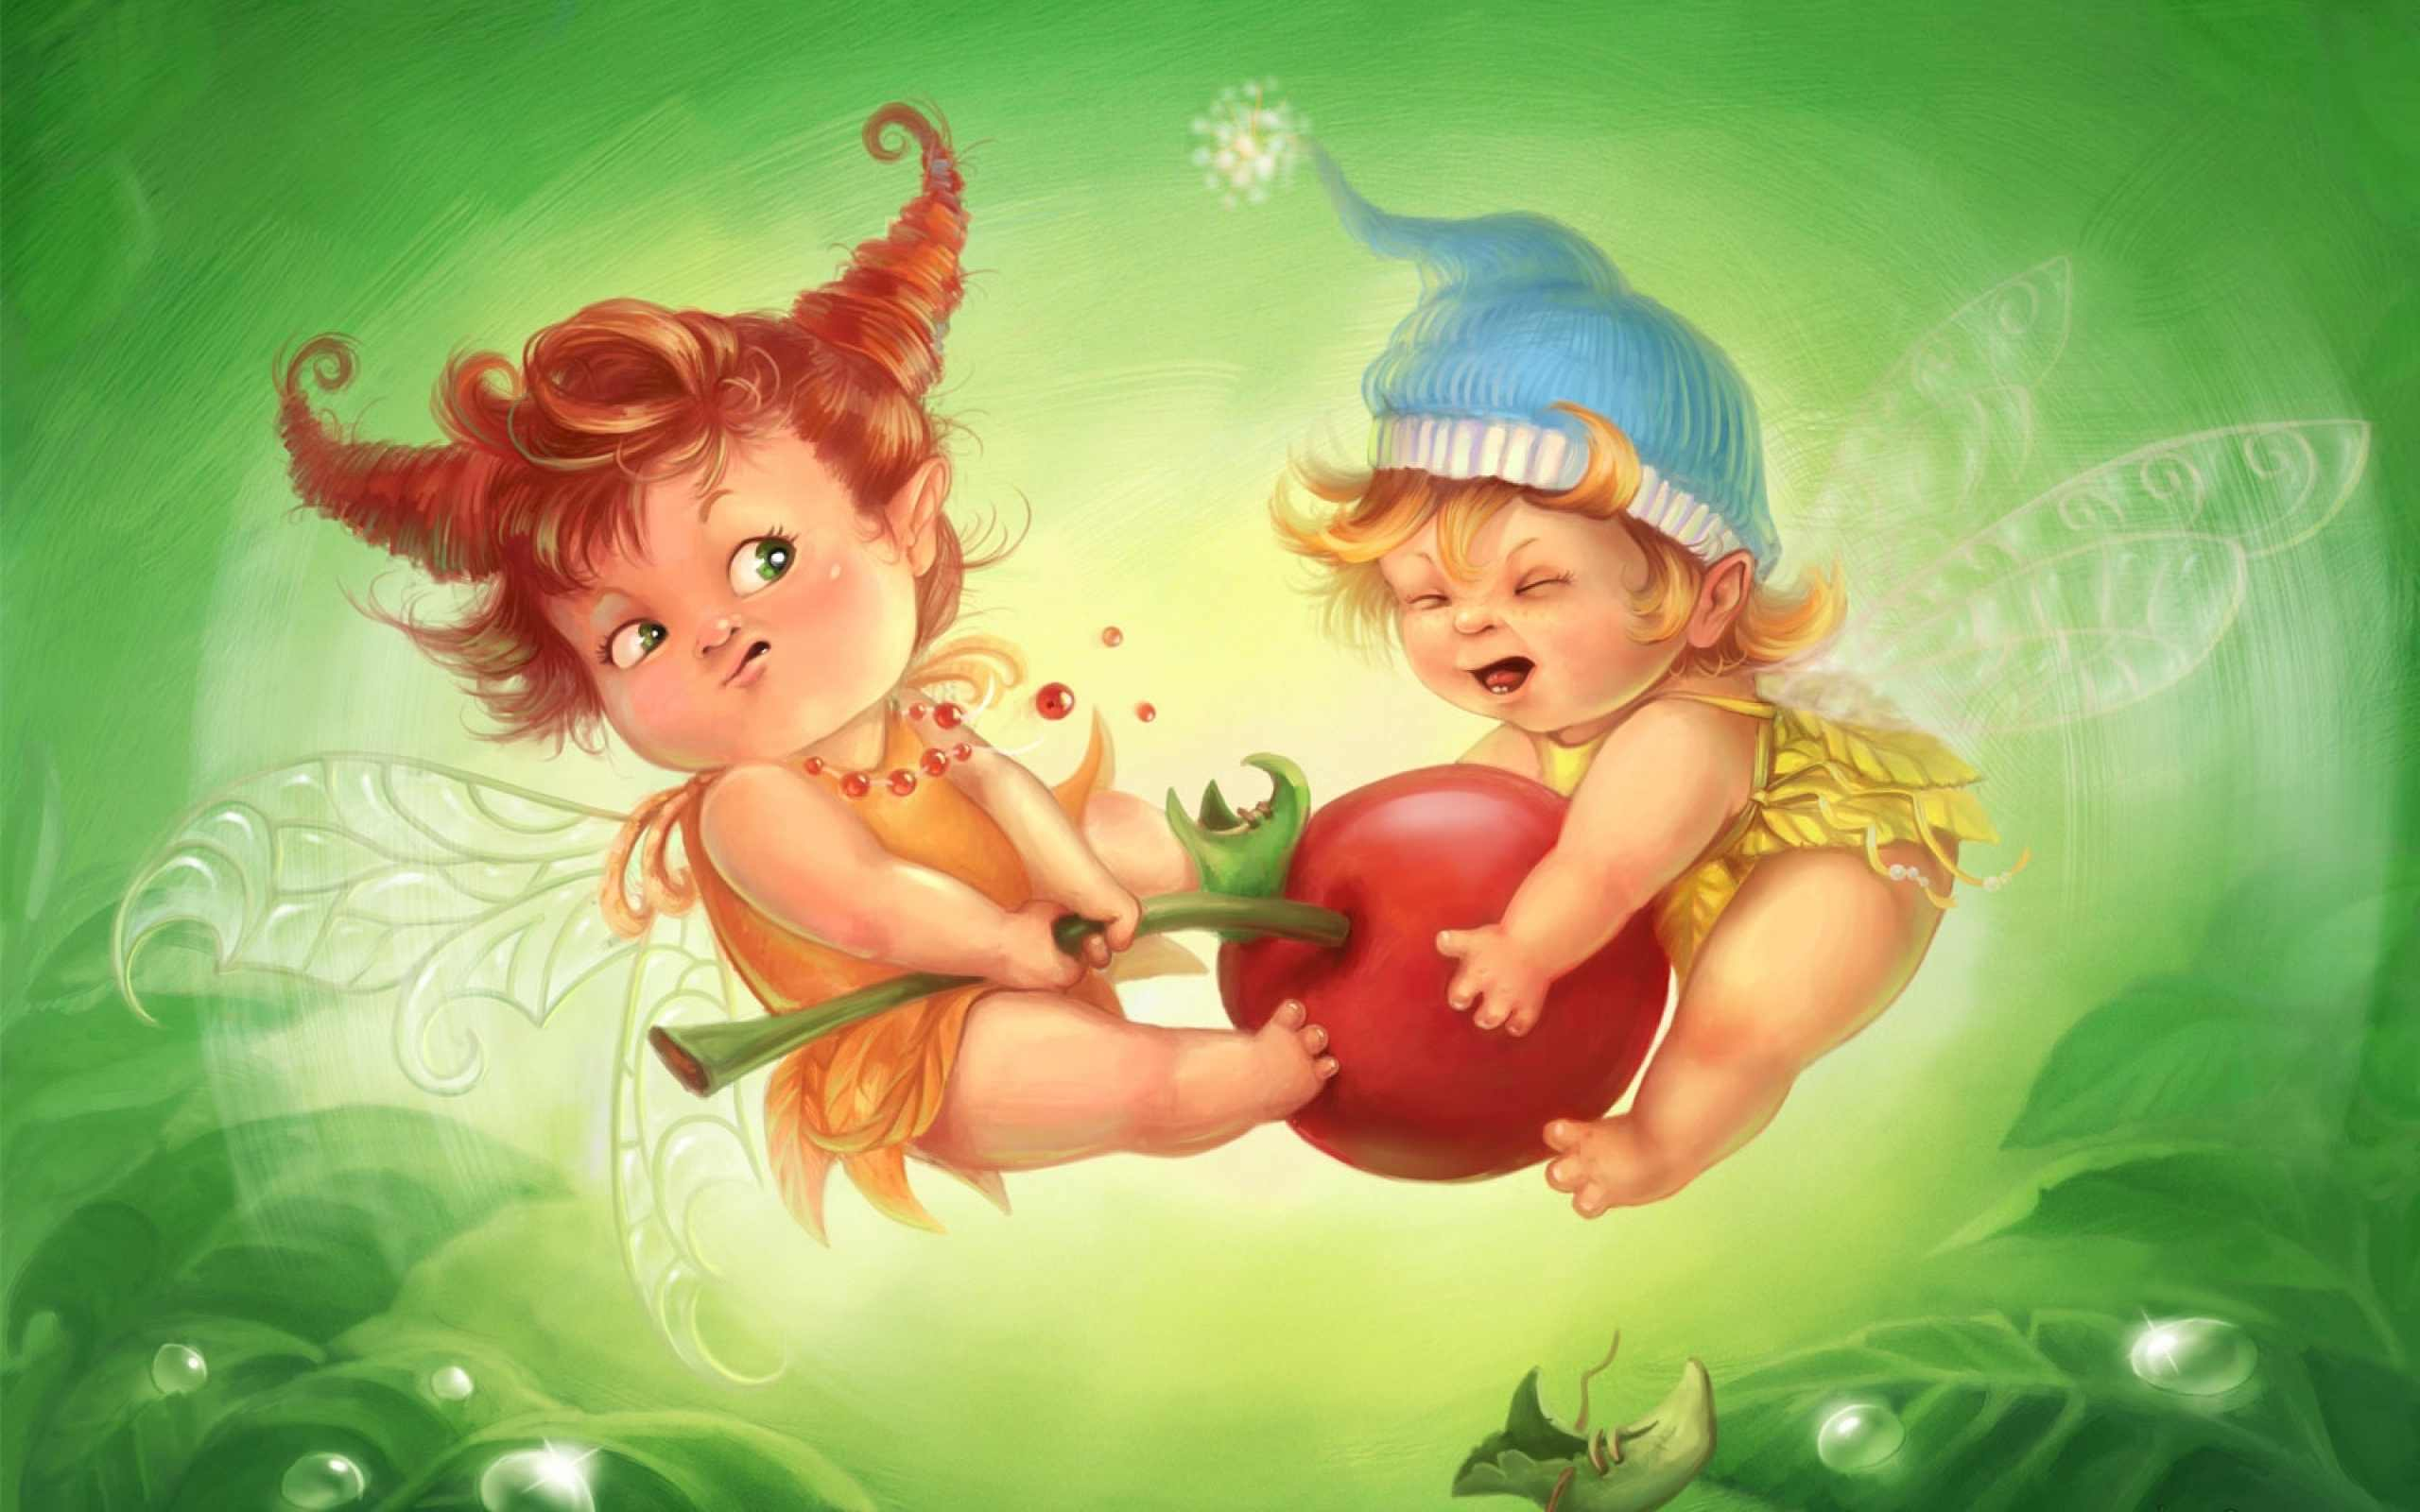 Fairies wallpaper backgrounds wallpaper cave fighting fairies wallpaper background 27986 voltagebd Image collections